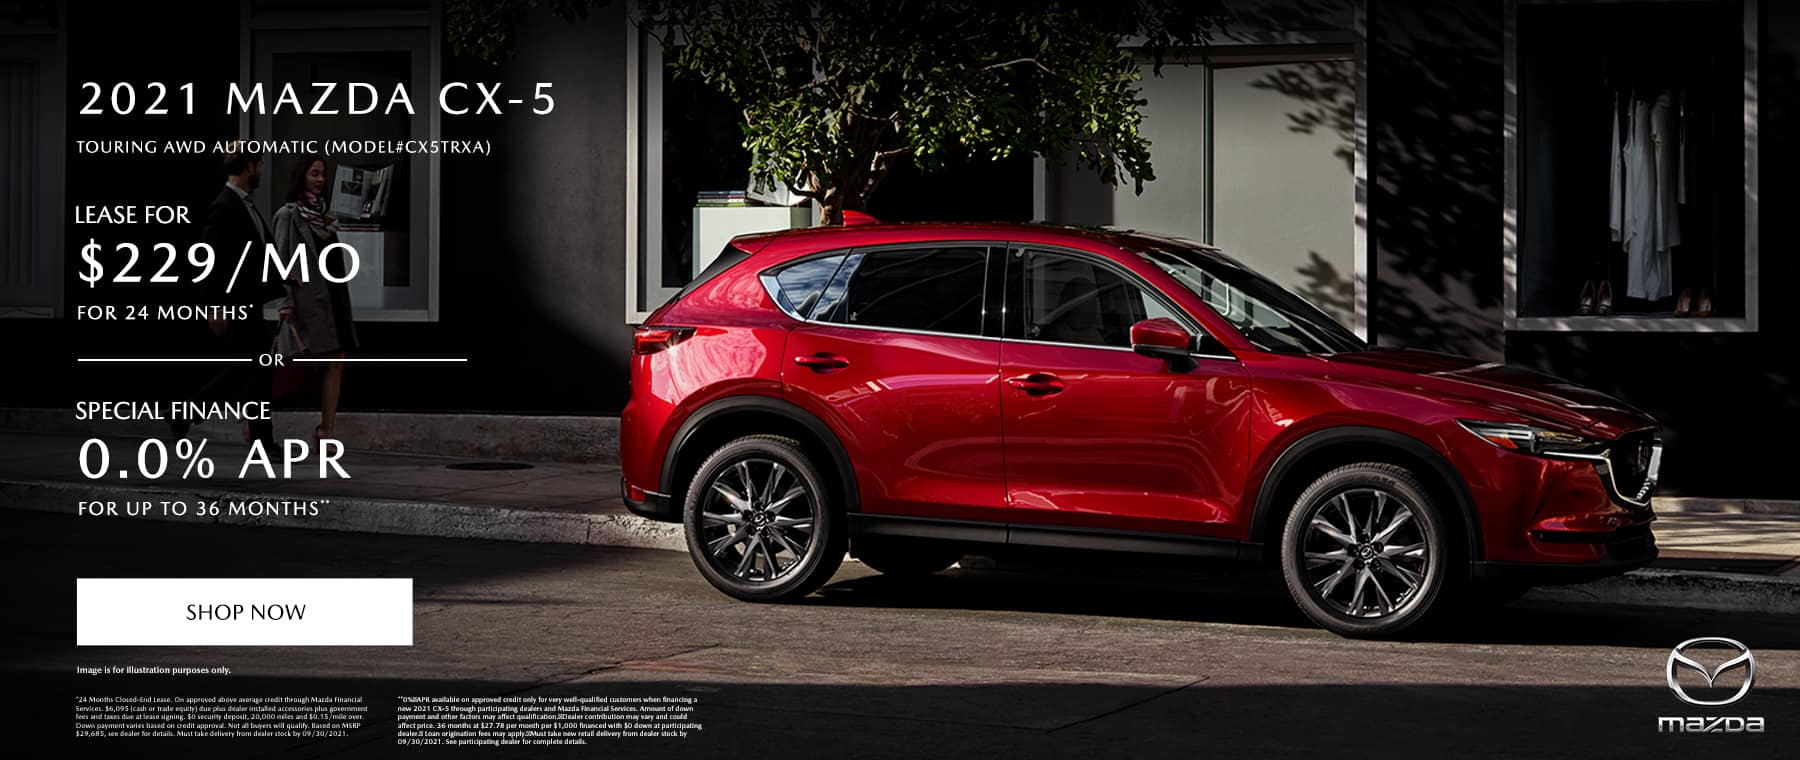 2021 MAZDA CX-5 TOURING AWD AUTOMATIC (MODEL#CX5TRXA) Lease Specials: $229/month @ 24 months* OR Special Finance: 0% APR for up to 36 Months**